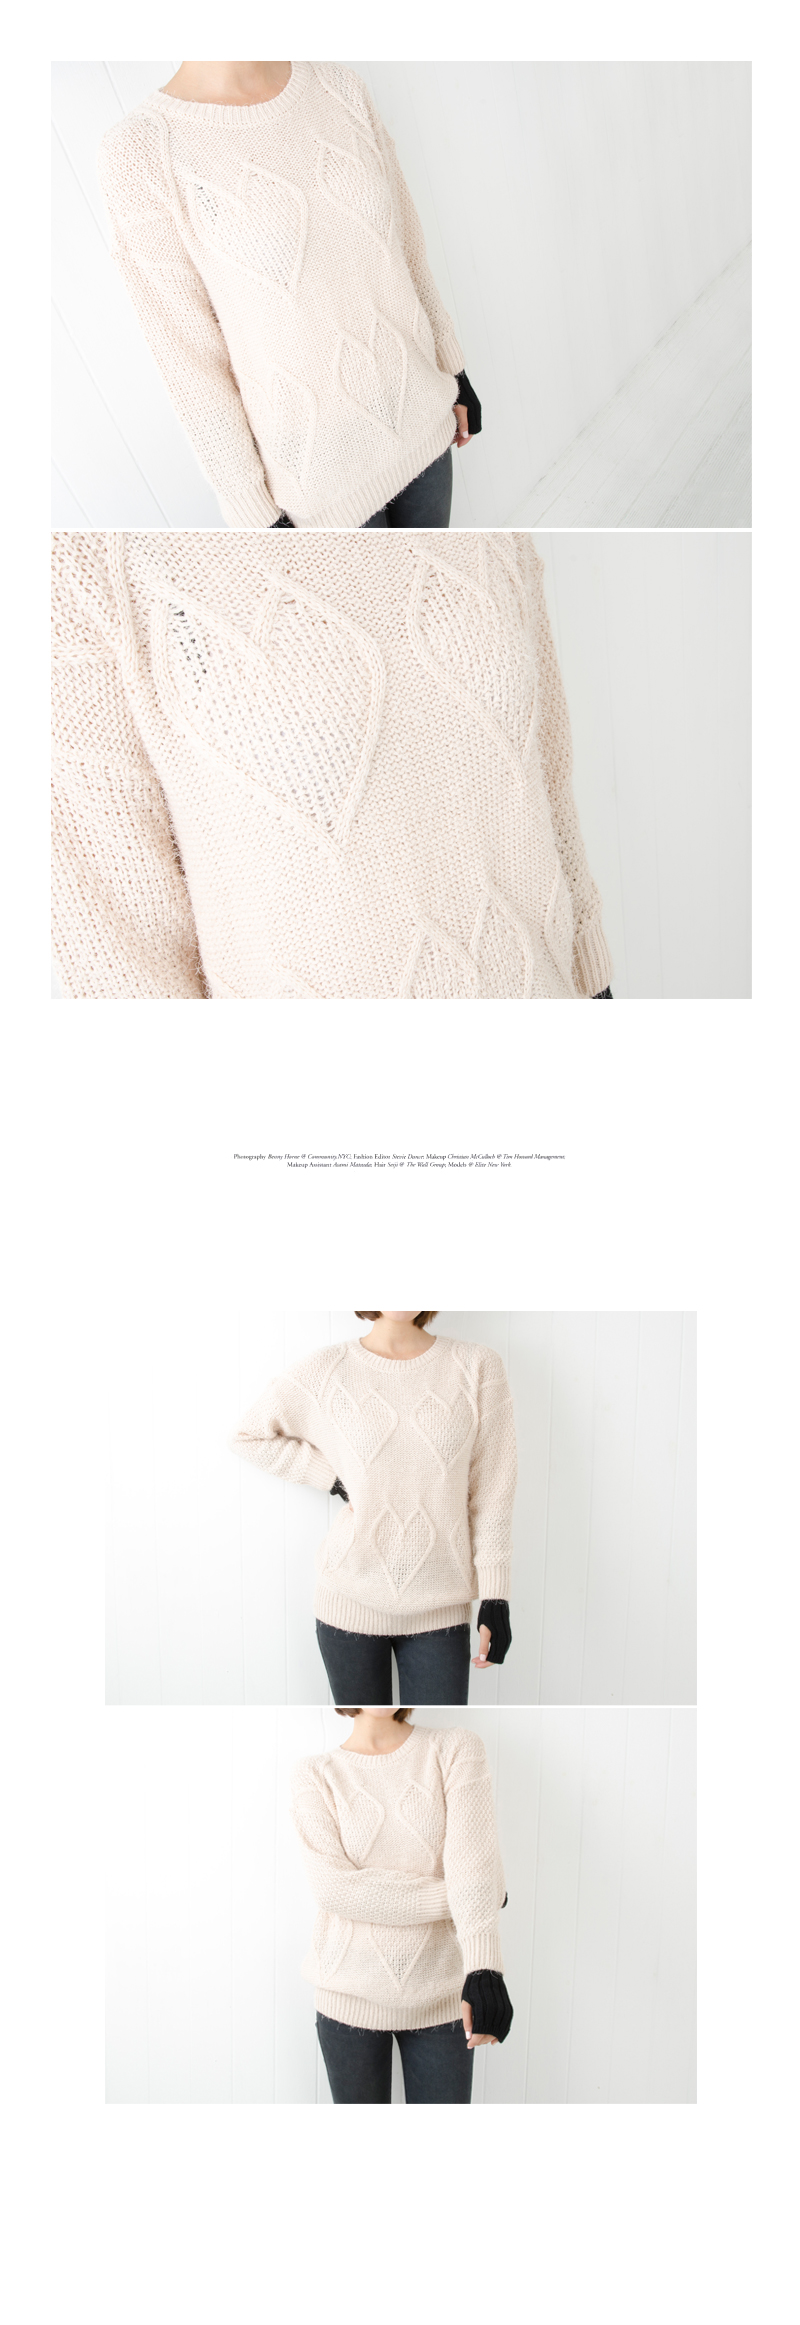 Heart-Pattern Knit Top , Beige , One Size - Cookie 7 | YESSTYLE Hong Kong